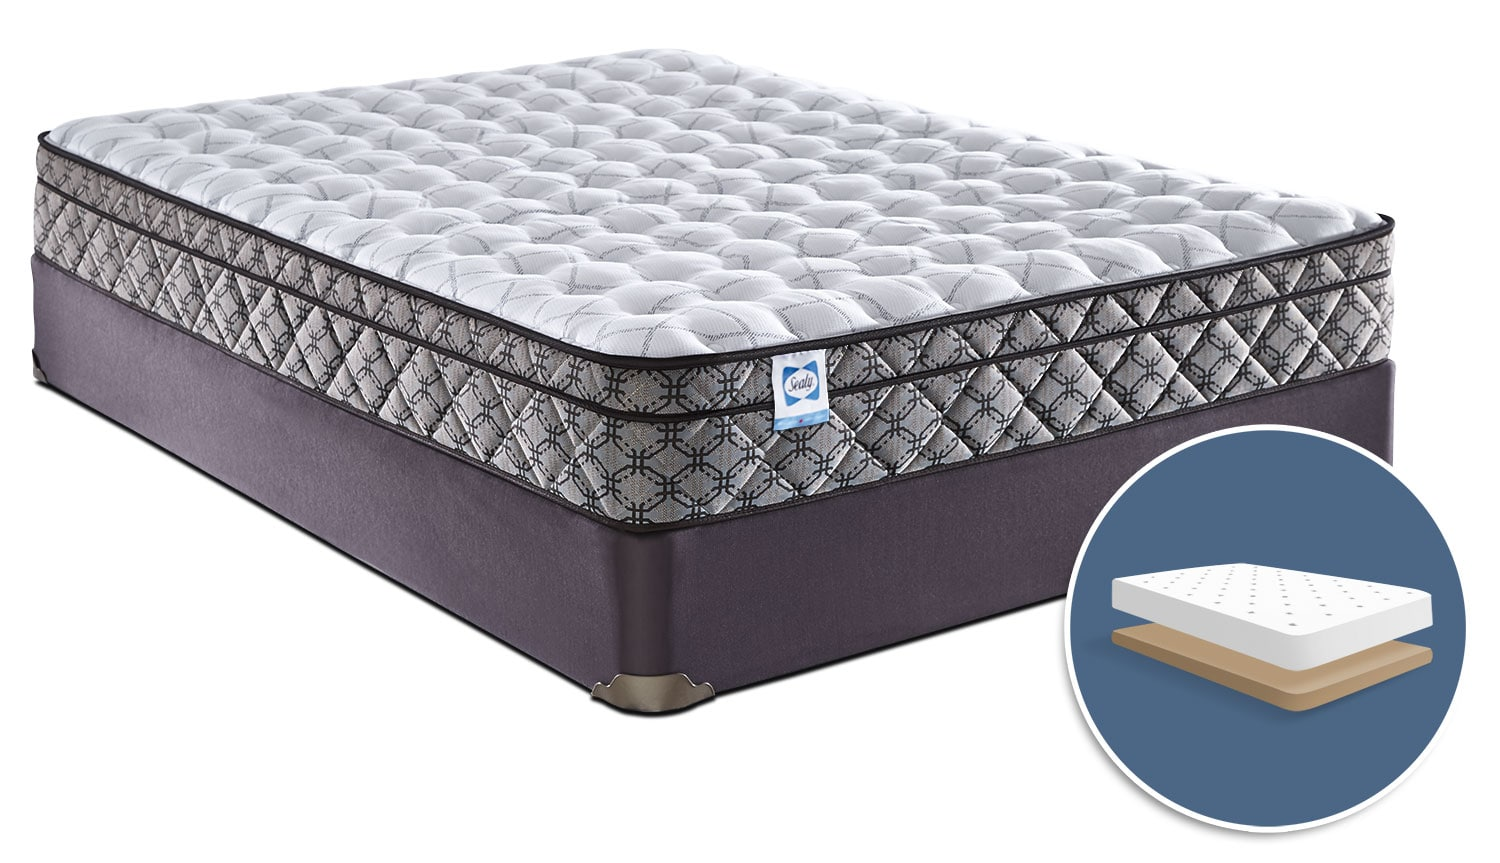 Mattresses and Bedding - Sealy Bellcroft Euro-Top Firm Full Low-Profile Mattress Set